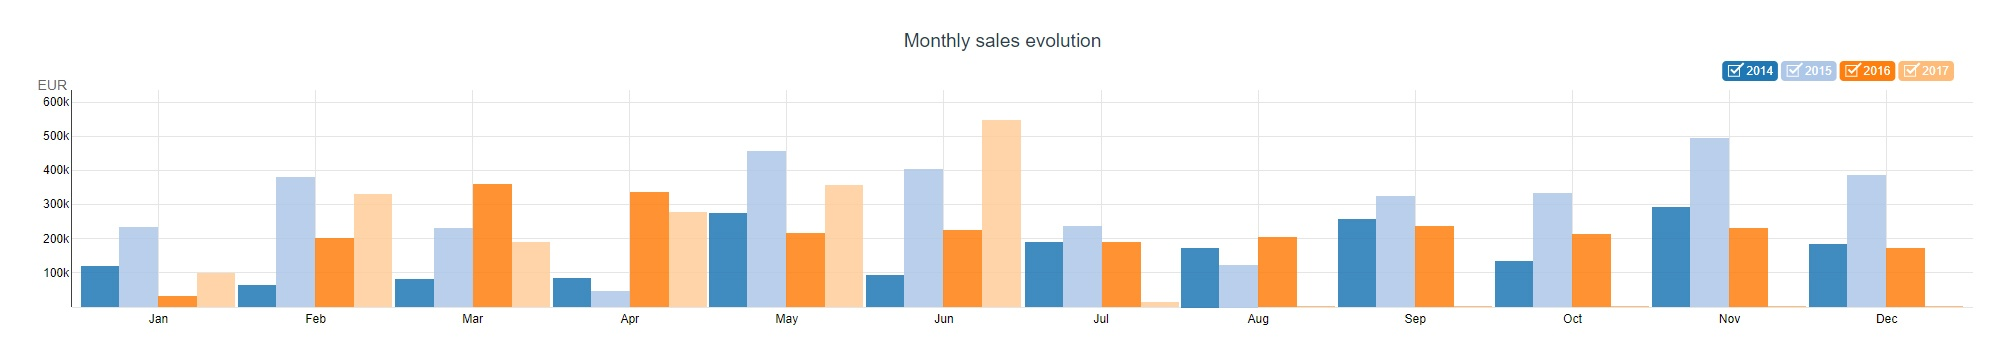 monthly sales evolution